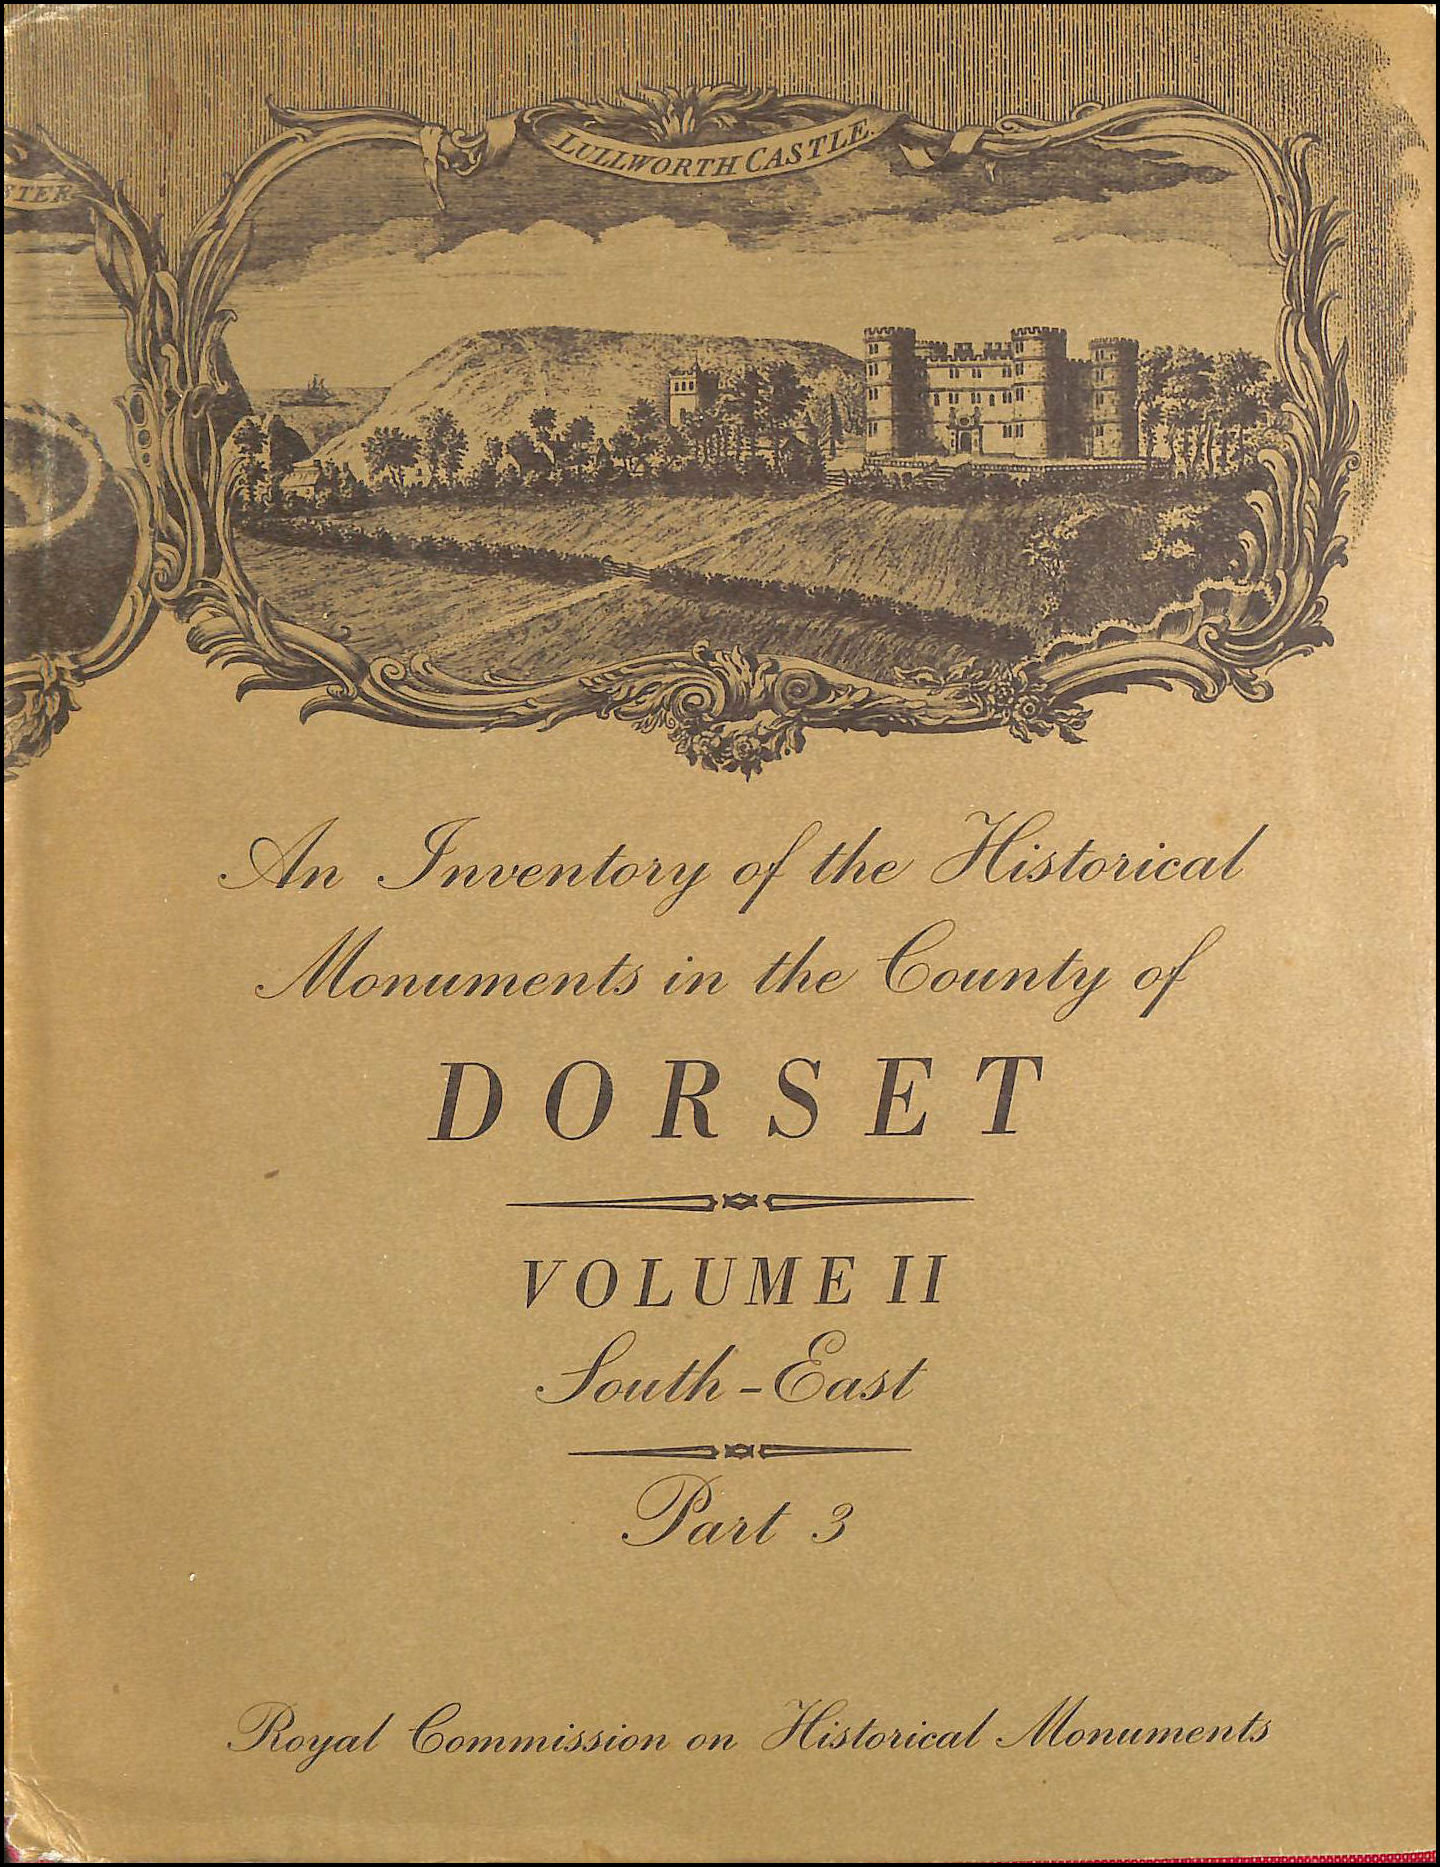 An Inventory of the Historical Monuments in the County of Dorset; Volume II, South-East, Part 3, Royal Commission on Historical Monuments